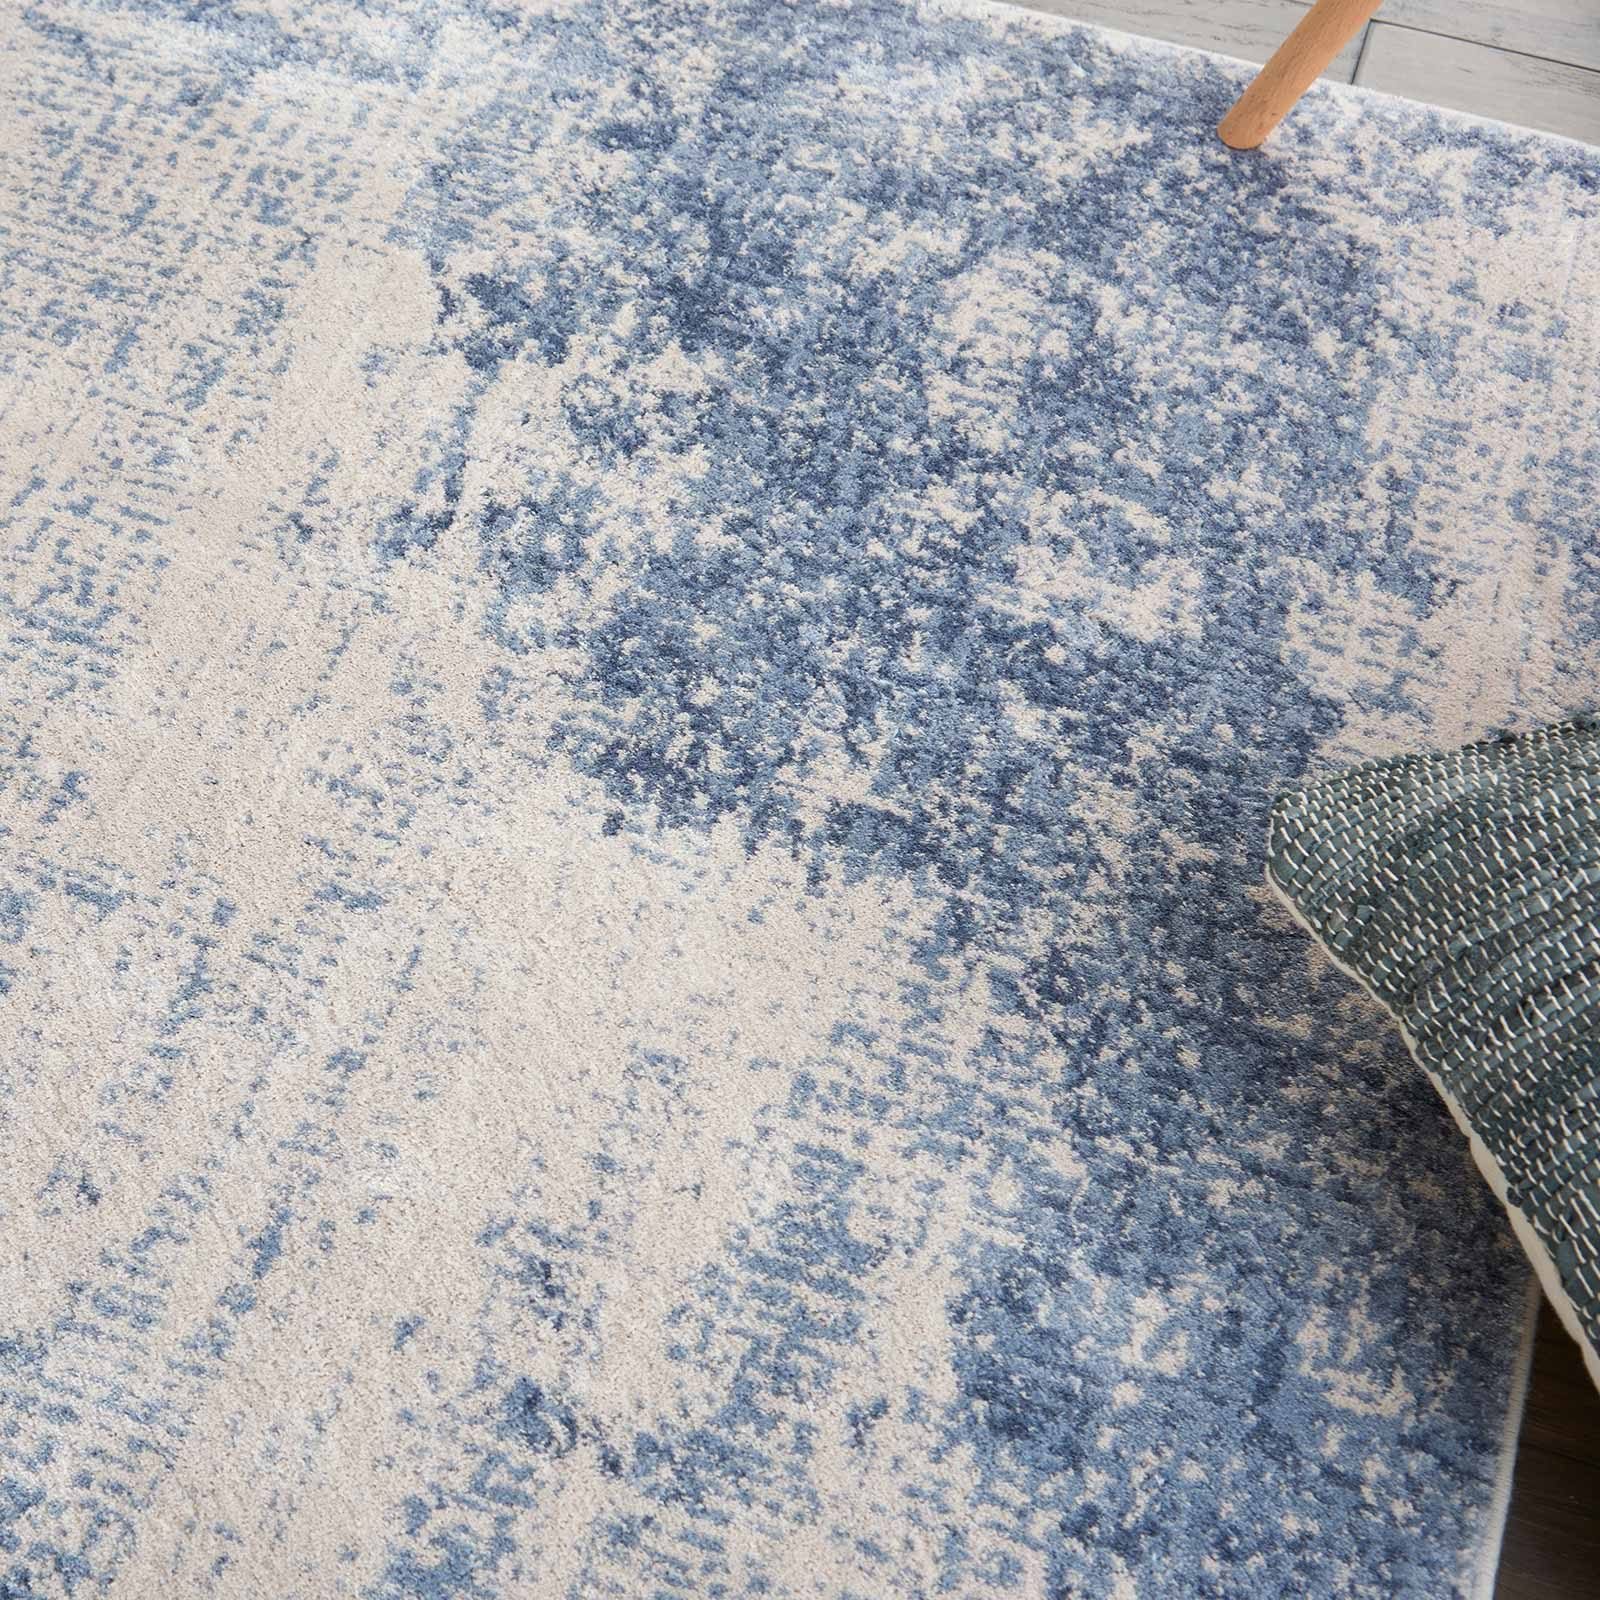 Nourison rug Silky Textures SLY01 IVORY BLUE 4x6 099446709677 interior 2 C